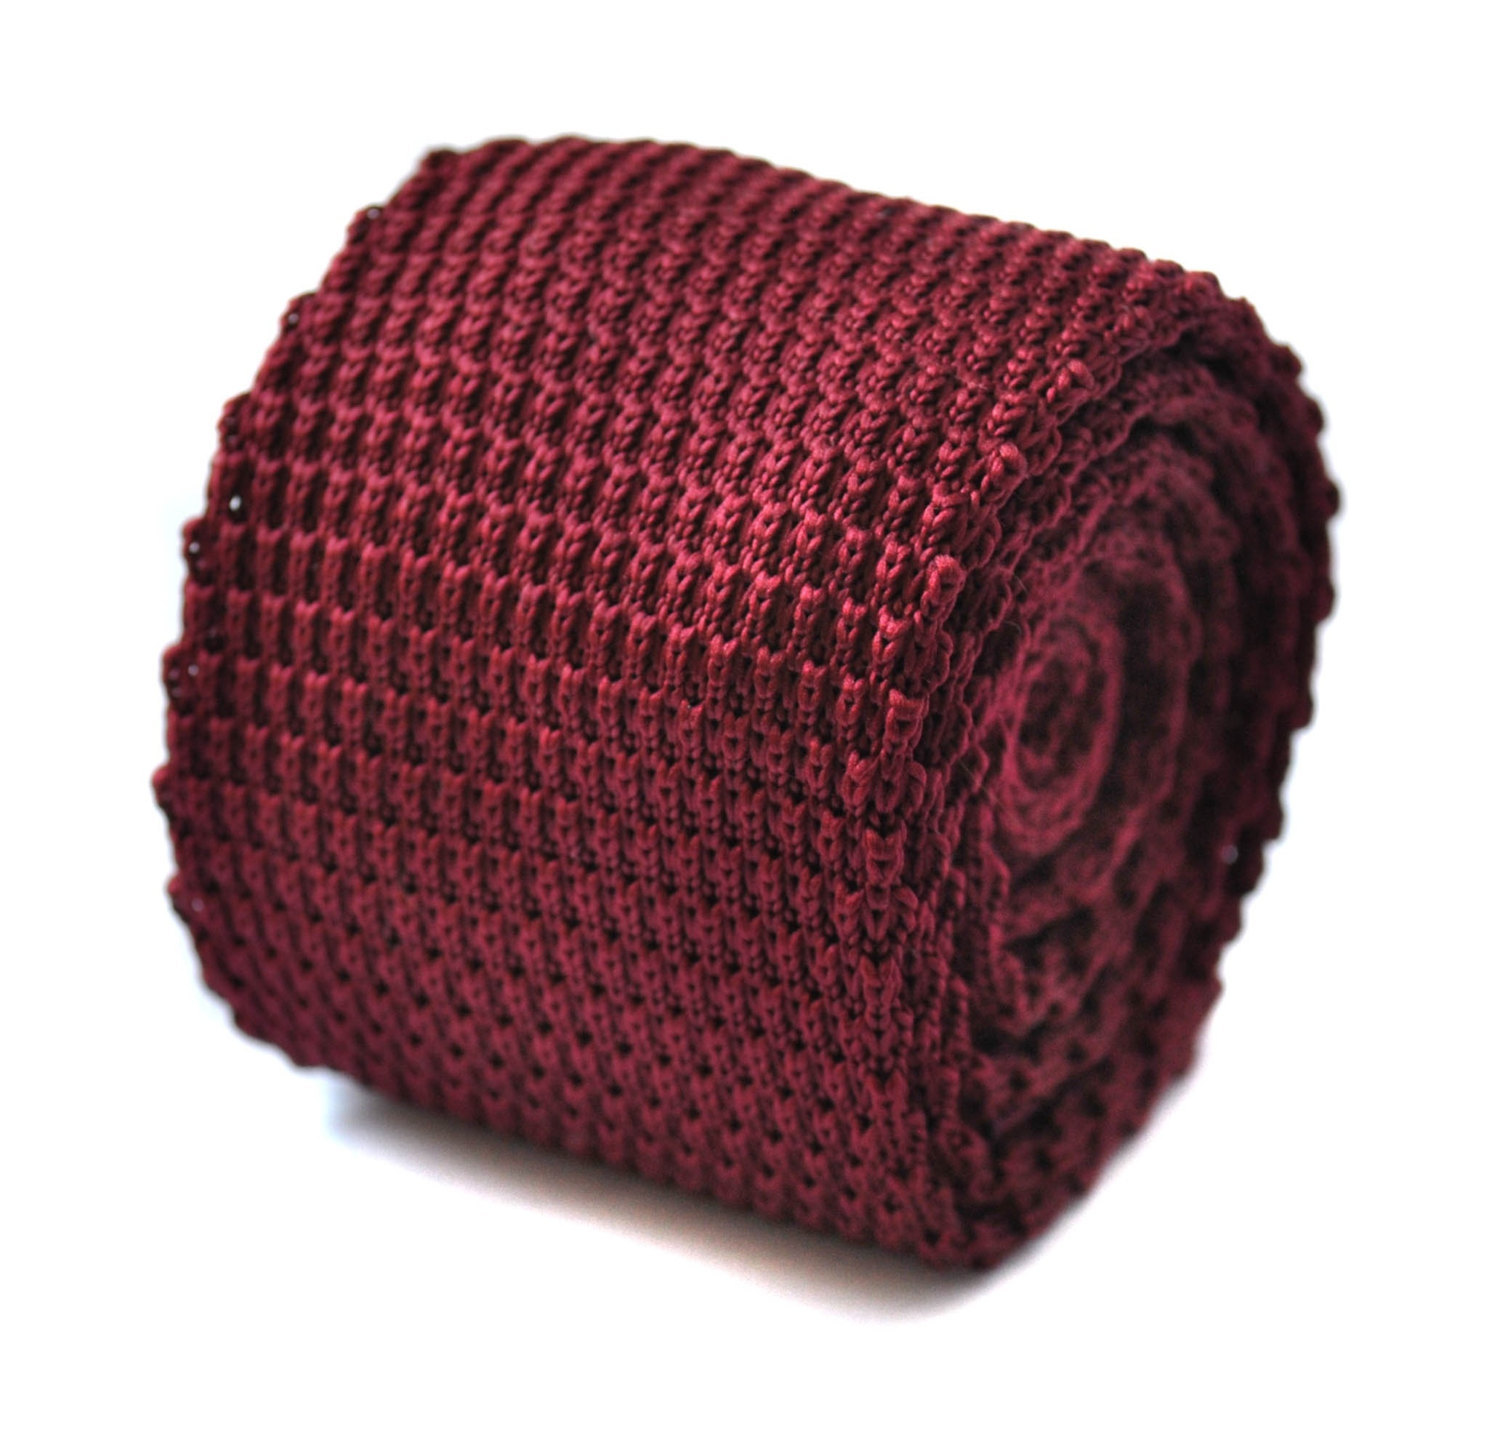 Plain maroon knitted skinny tie by Frederick Thomas FT272